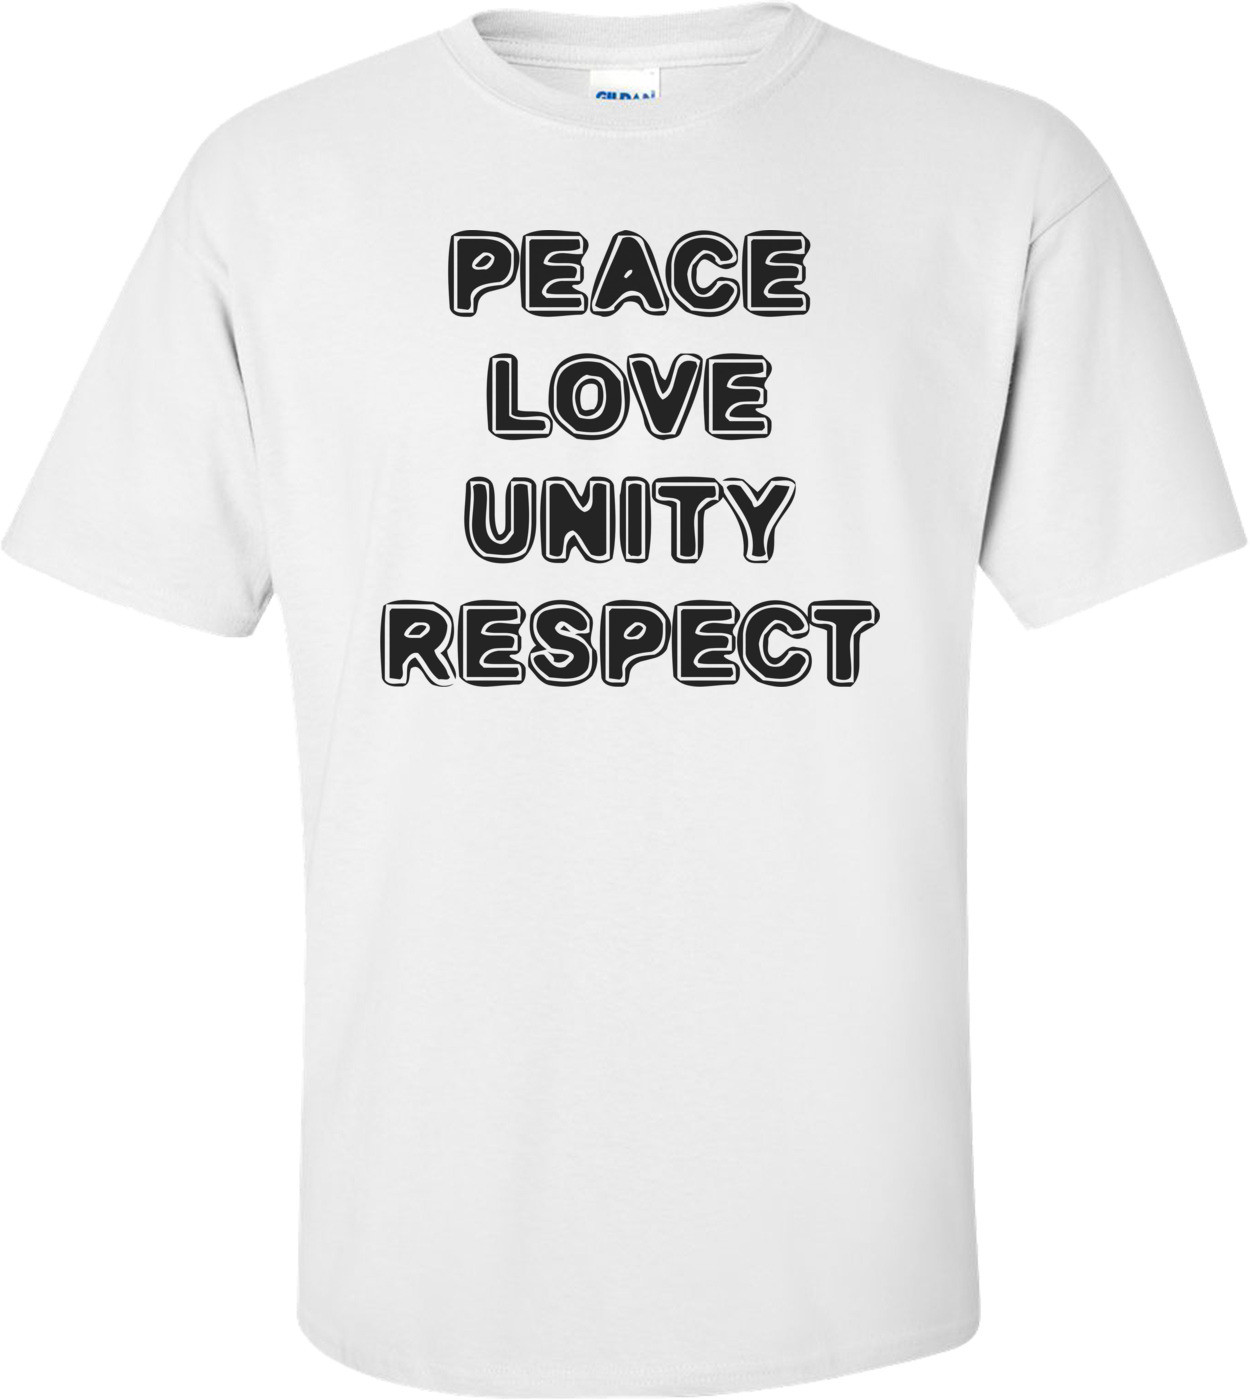 PEACE LOVE UNITY RESPECT Shirt